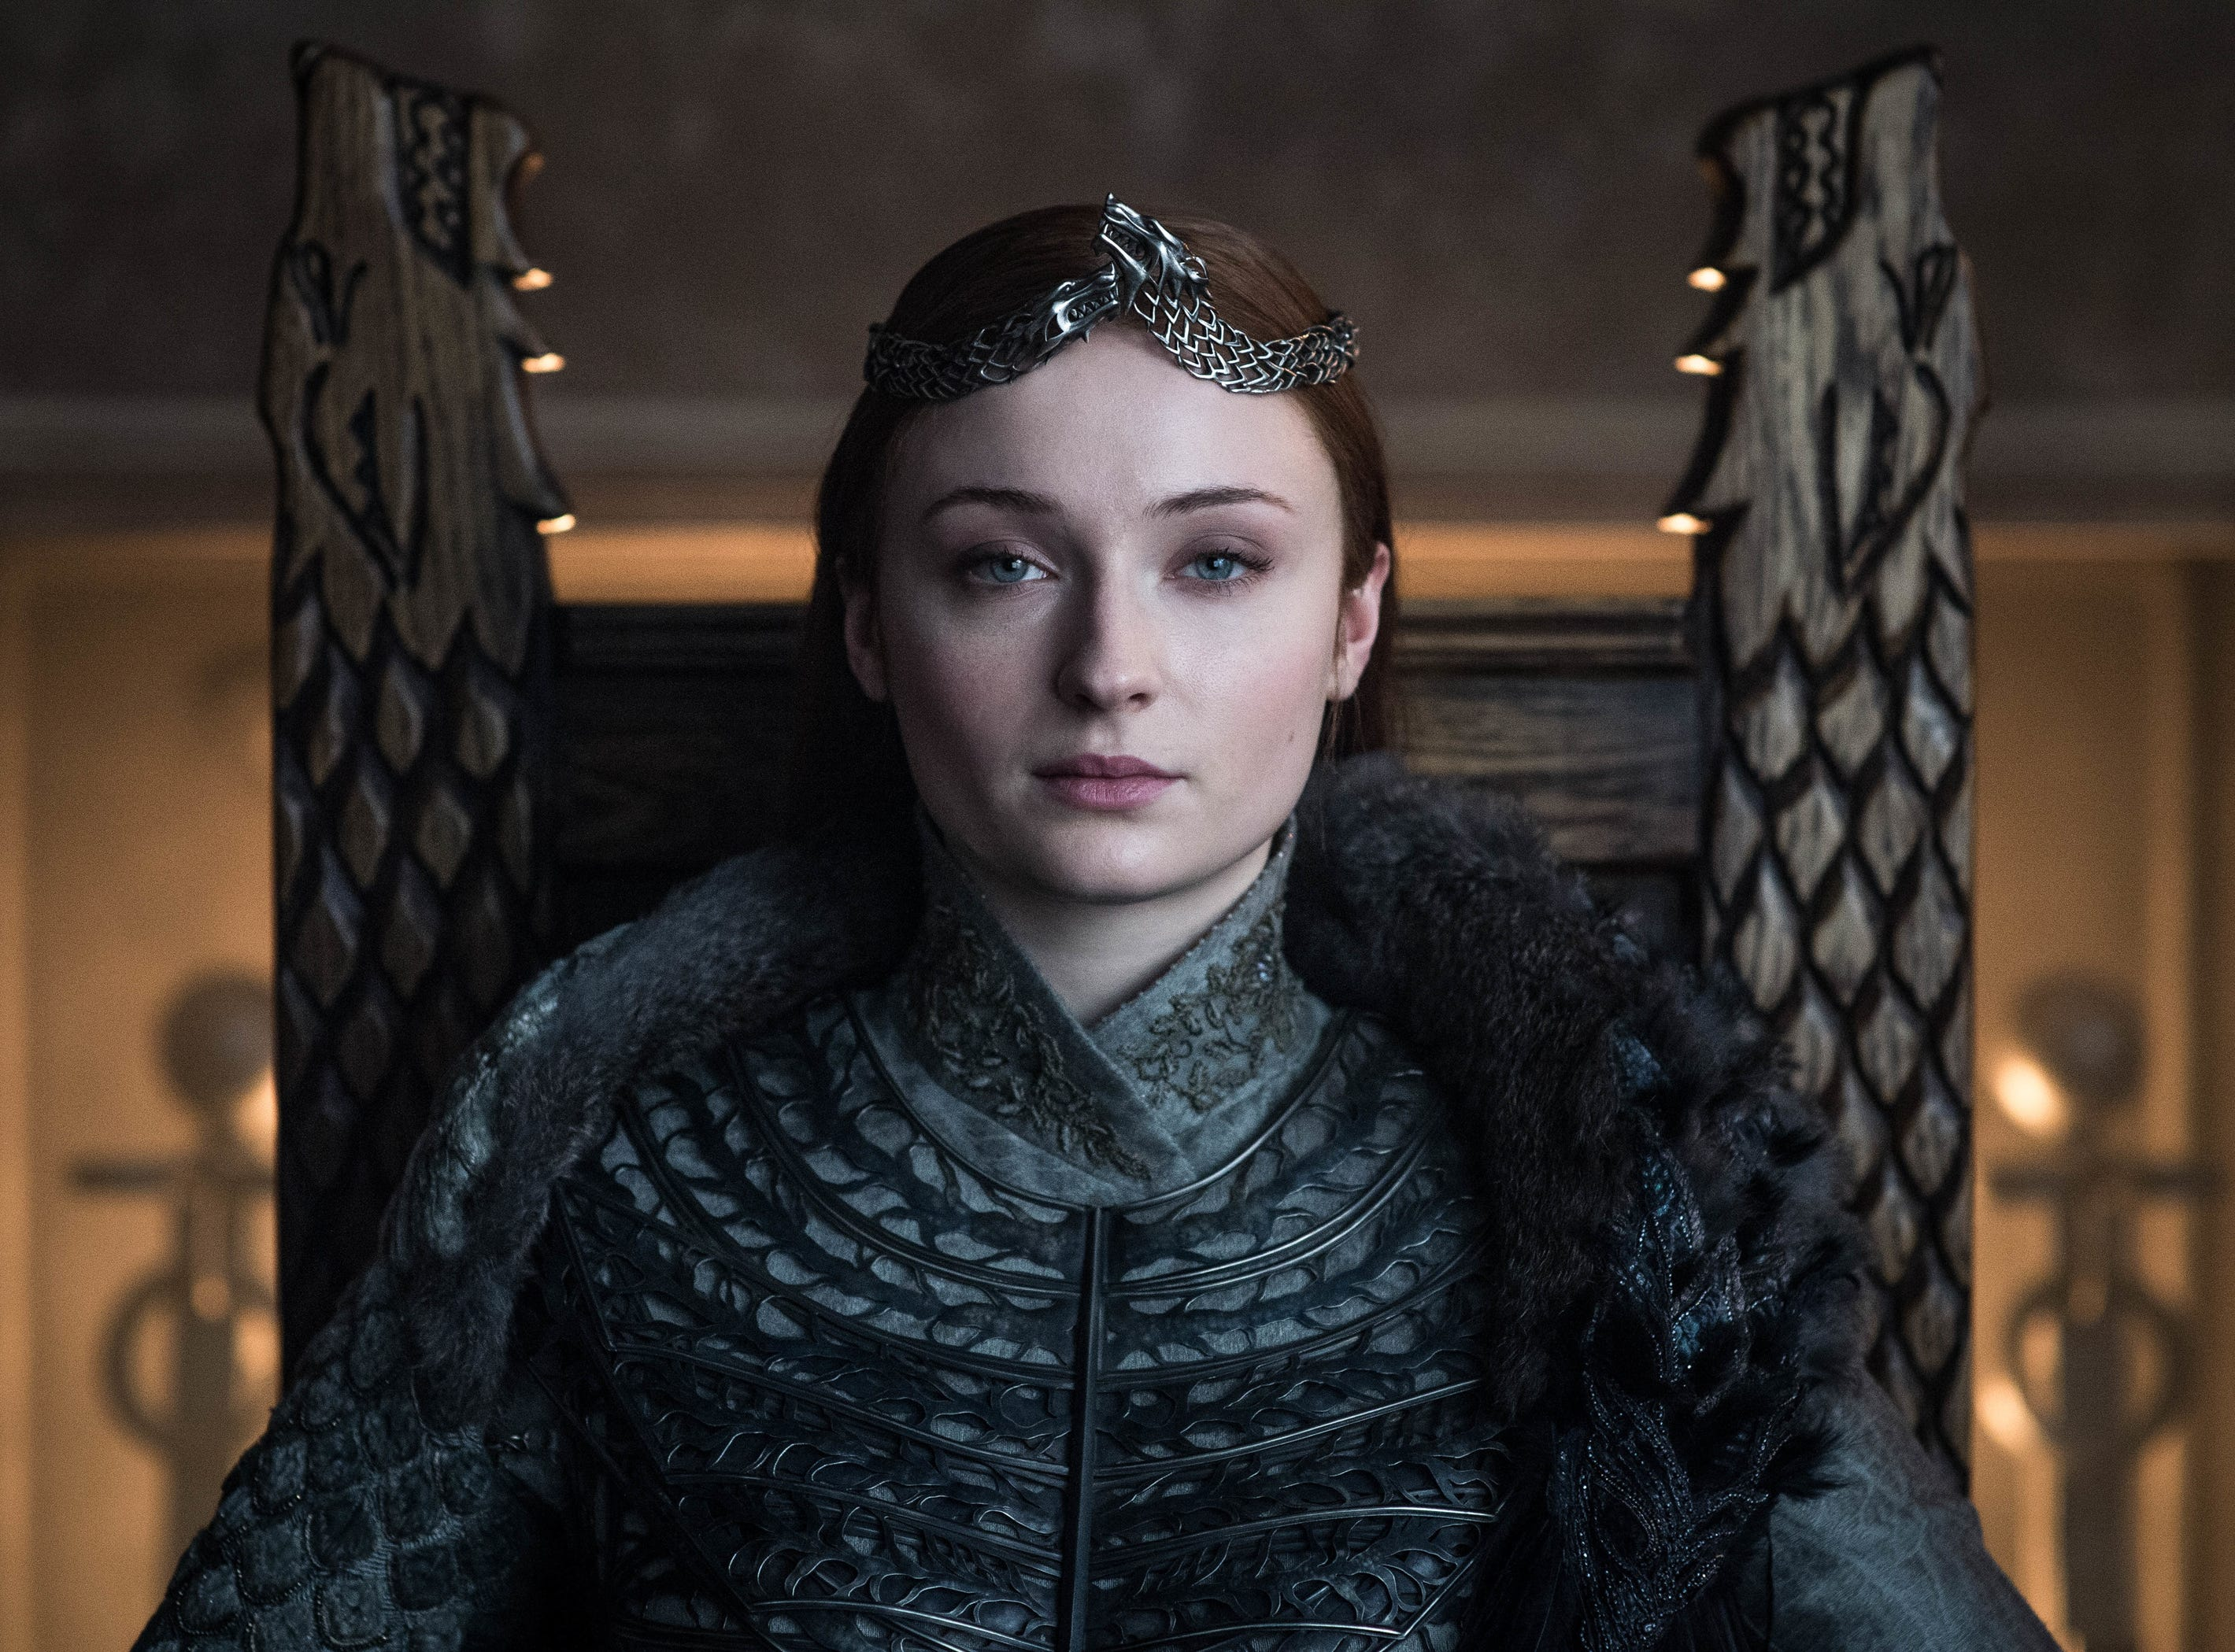 Sansa Stark (Sophie Turner) wears the crown as Queen in the North.